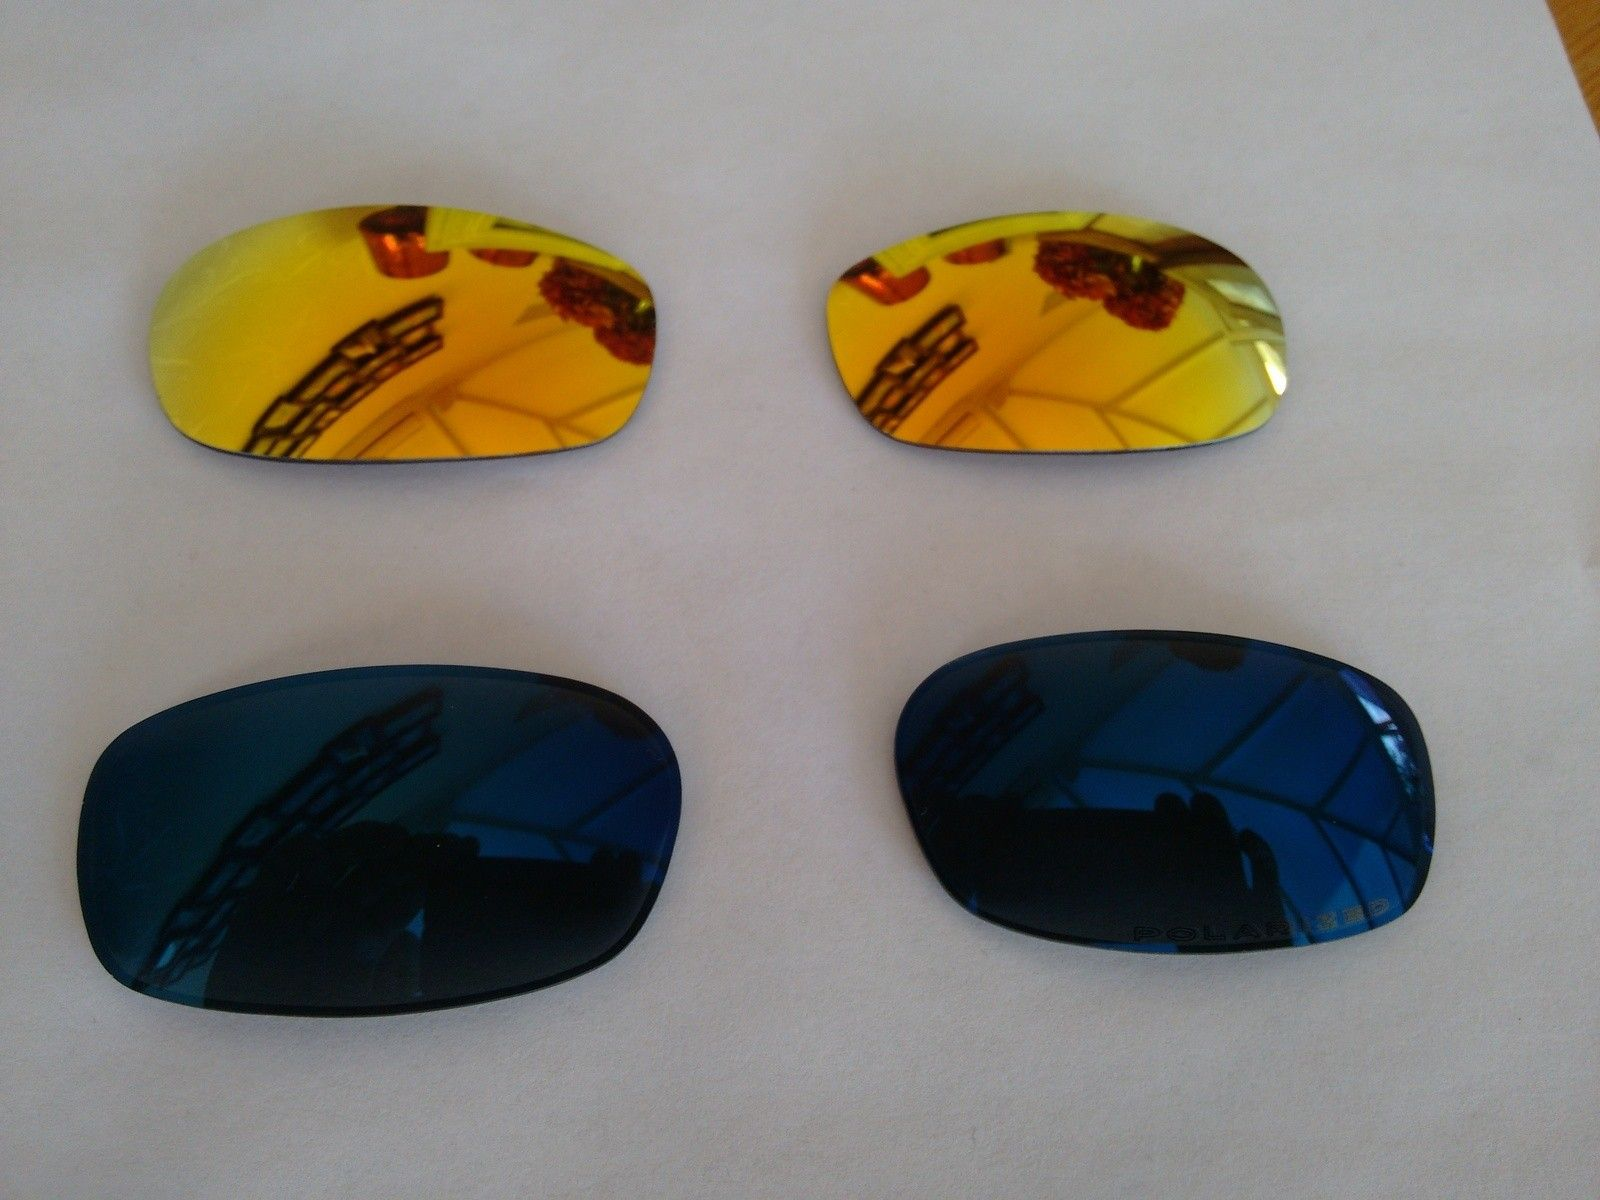 Brand new Square wire 2.0 sprung hinge lenses ice polarized/fire - IMG_20150827_164333436.jpg